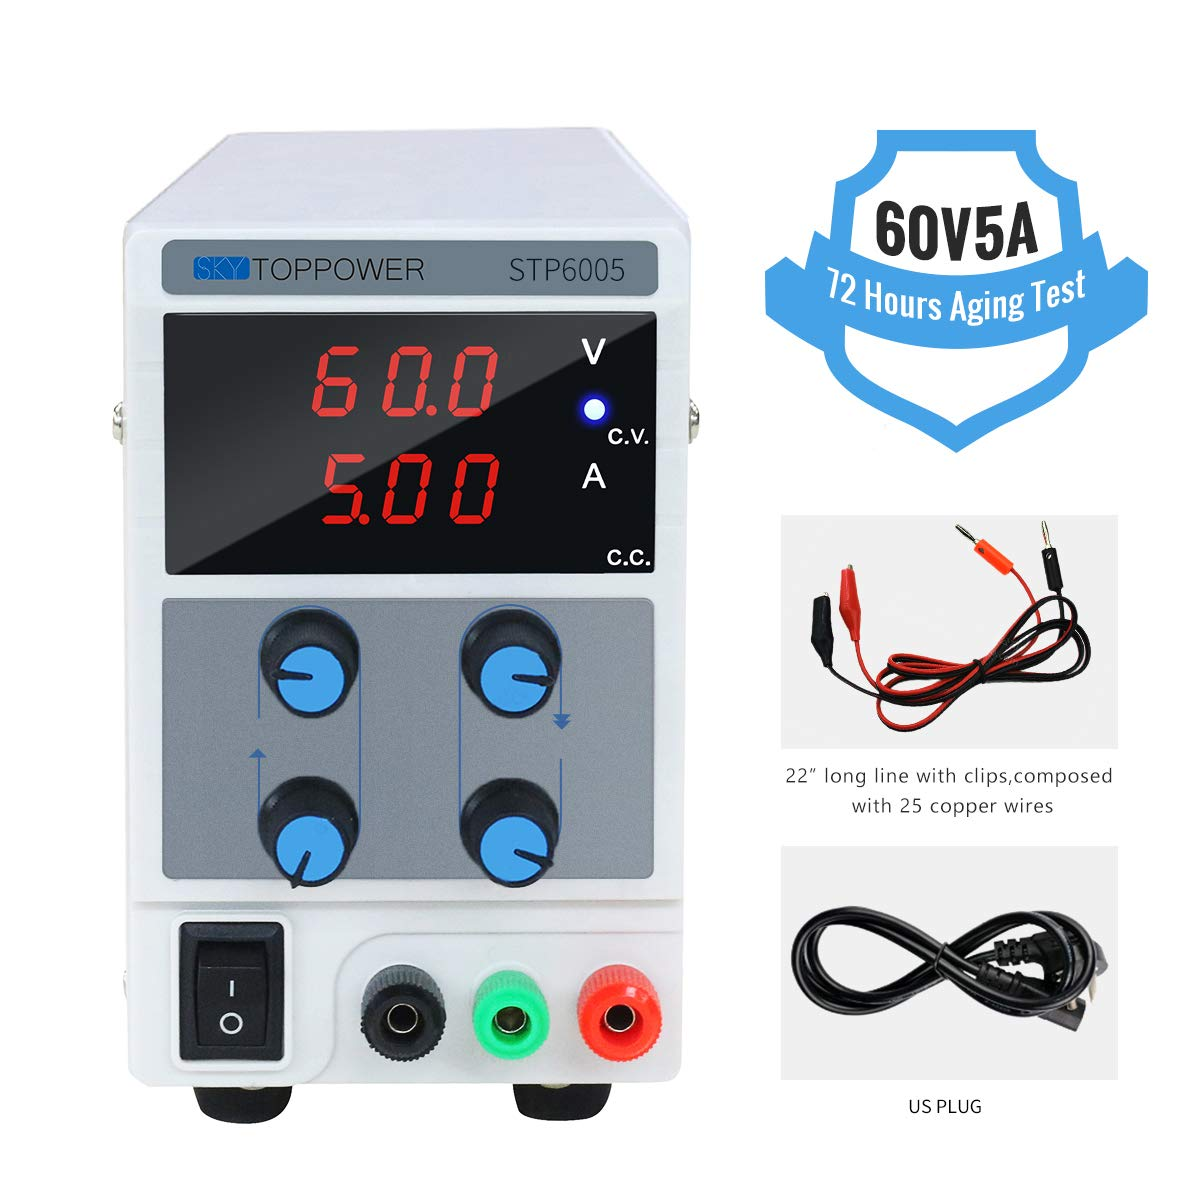 DC Power Supply Variable 60V 5A Switching Regulated 3-Digital Power Supply Single-Output 110V, with Alligator Leads, US Power Cord